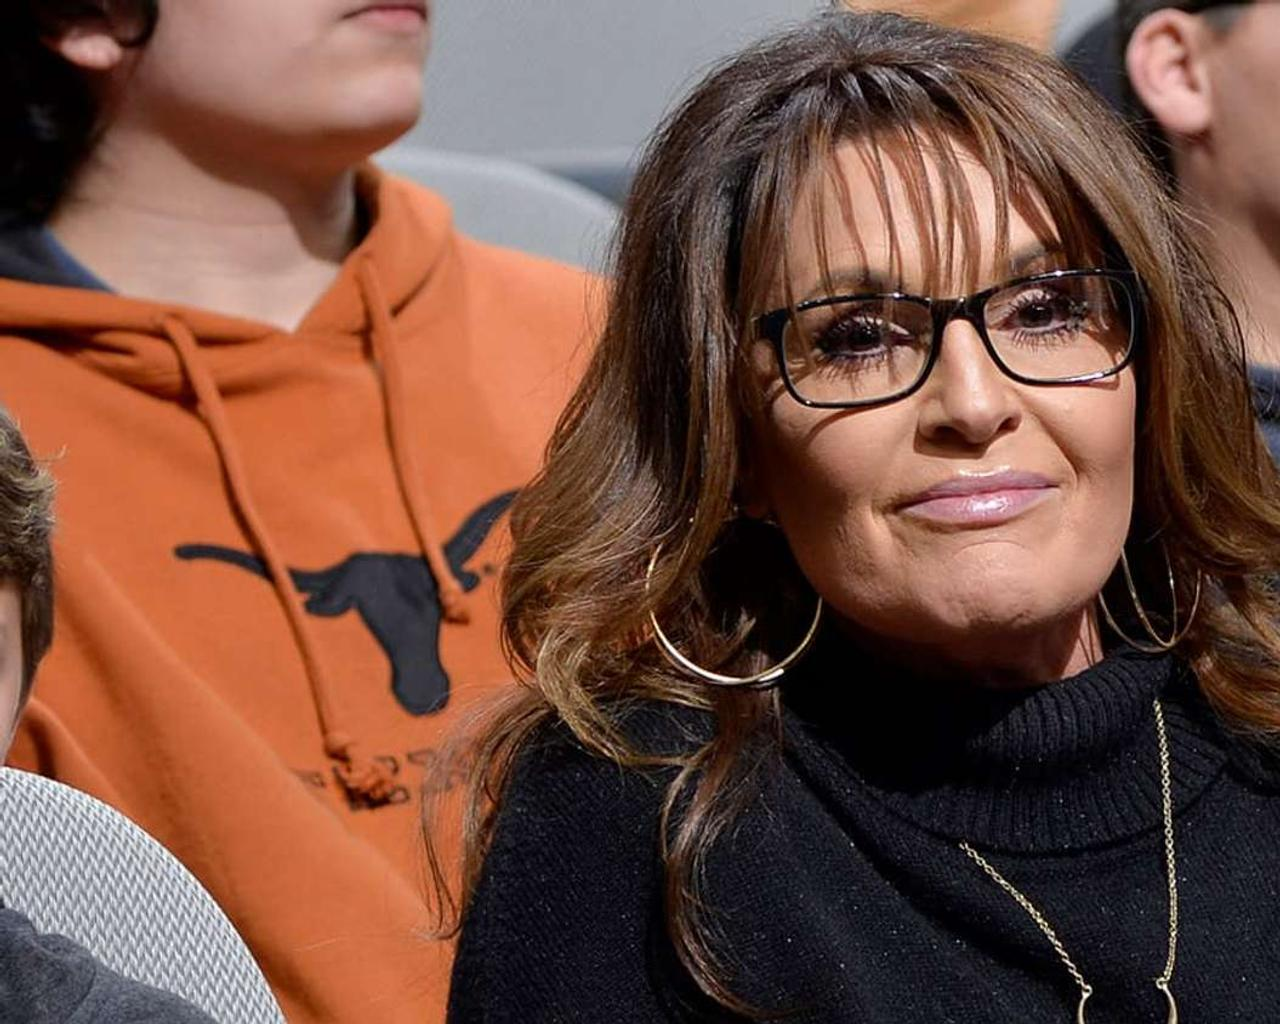 Sarah Palin urges the use of the mask after disclosing the diagnosis of Covid-19